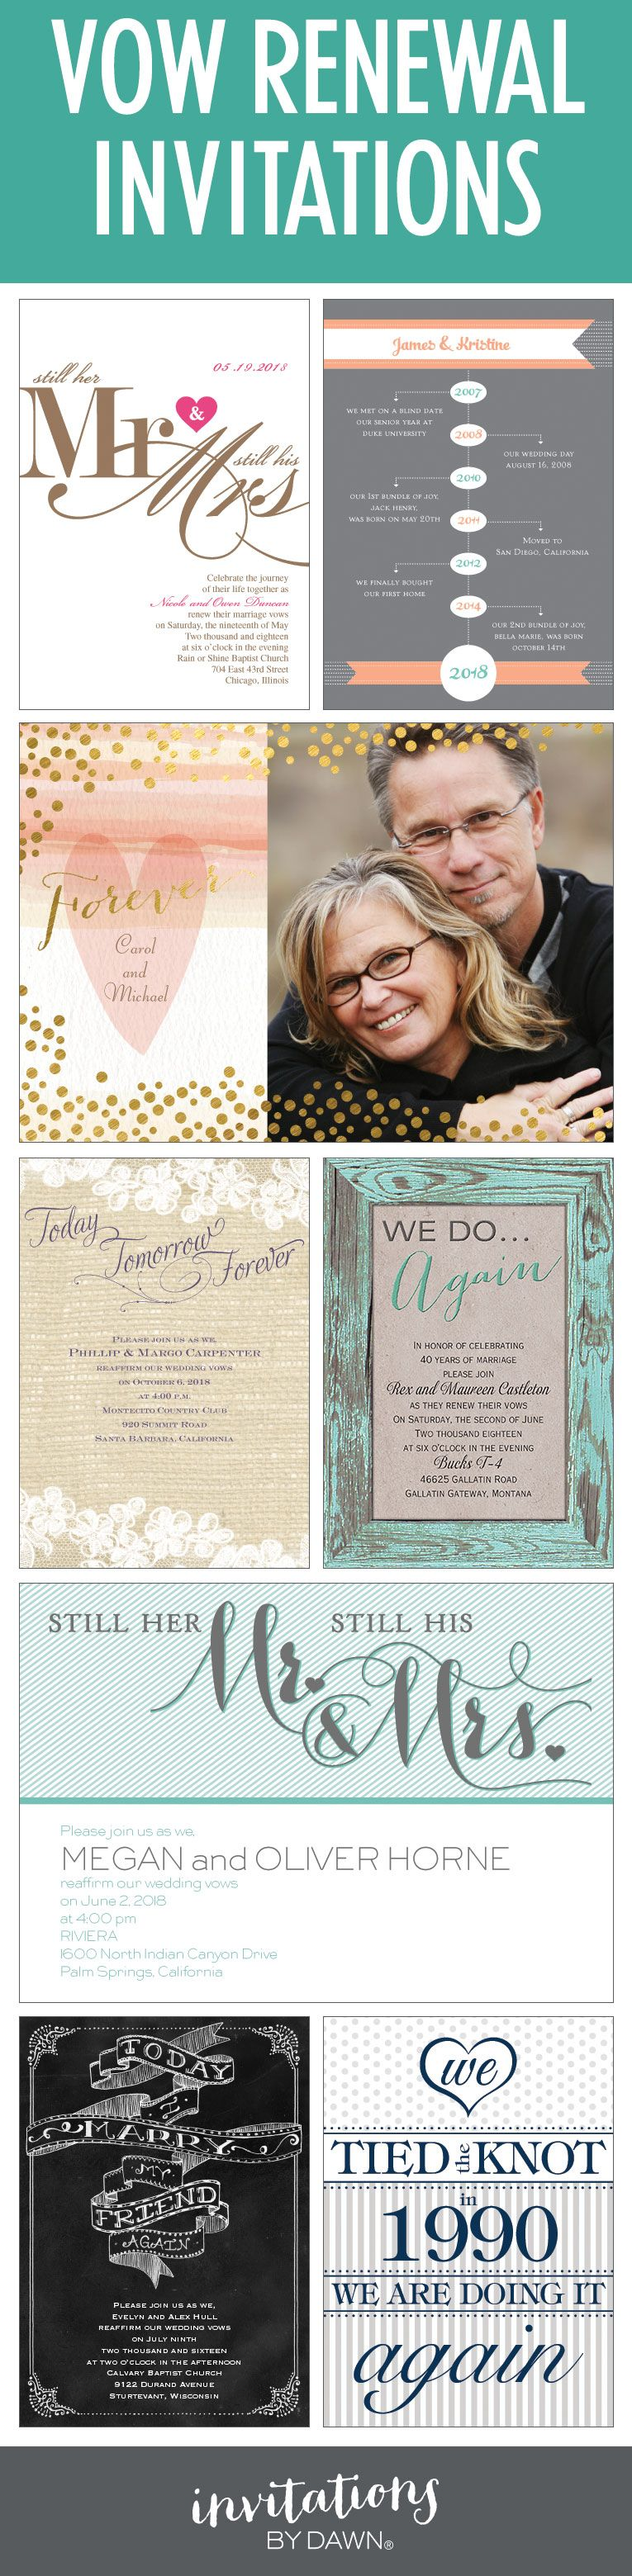 The best invitations for your Vow Renewal